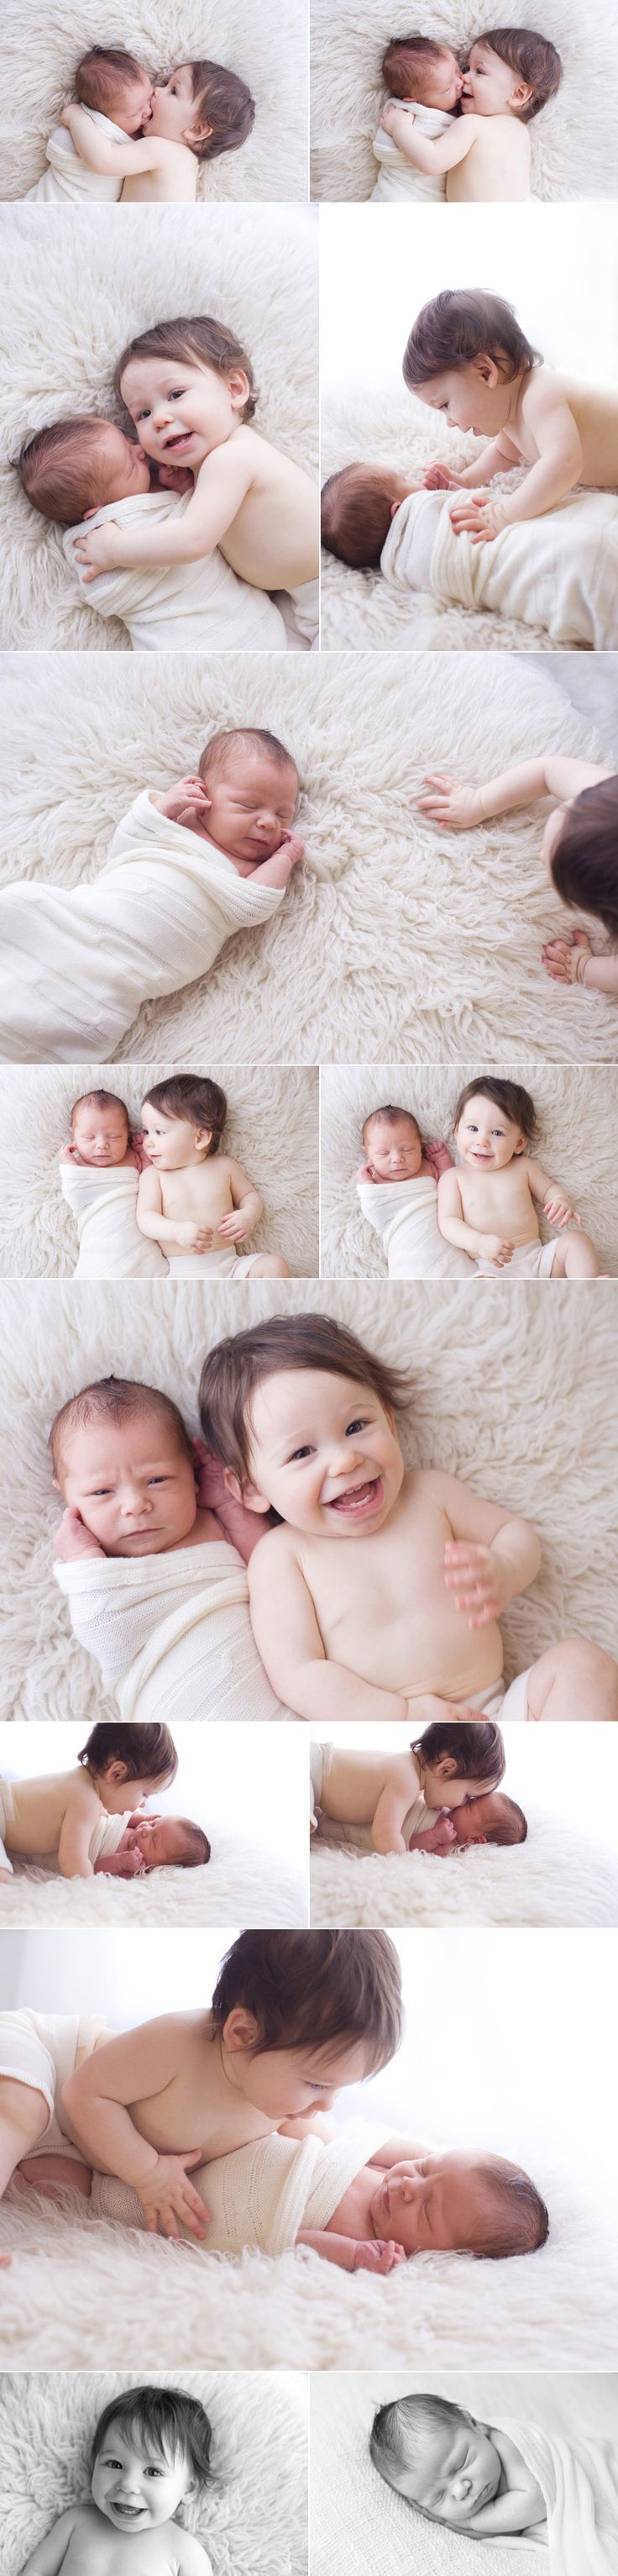 Of course this turned out to be Raye Law! How inspiring is this? Amazing newborn sibling idea... Just pure perfection!